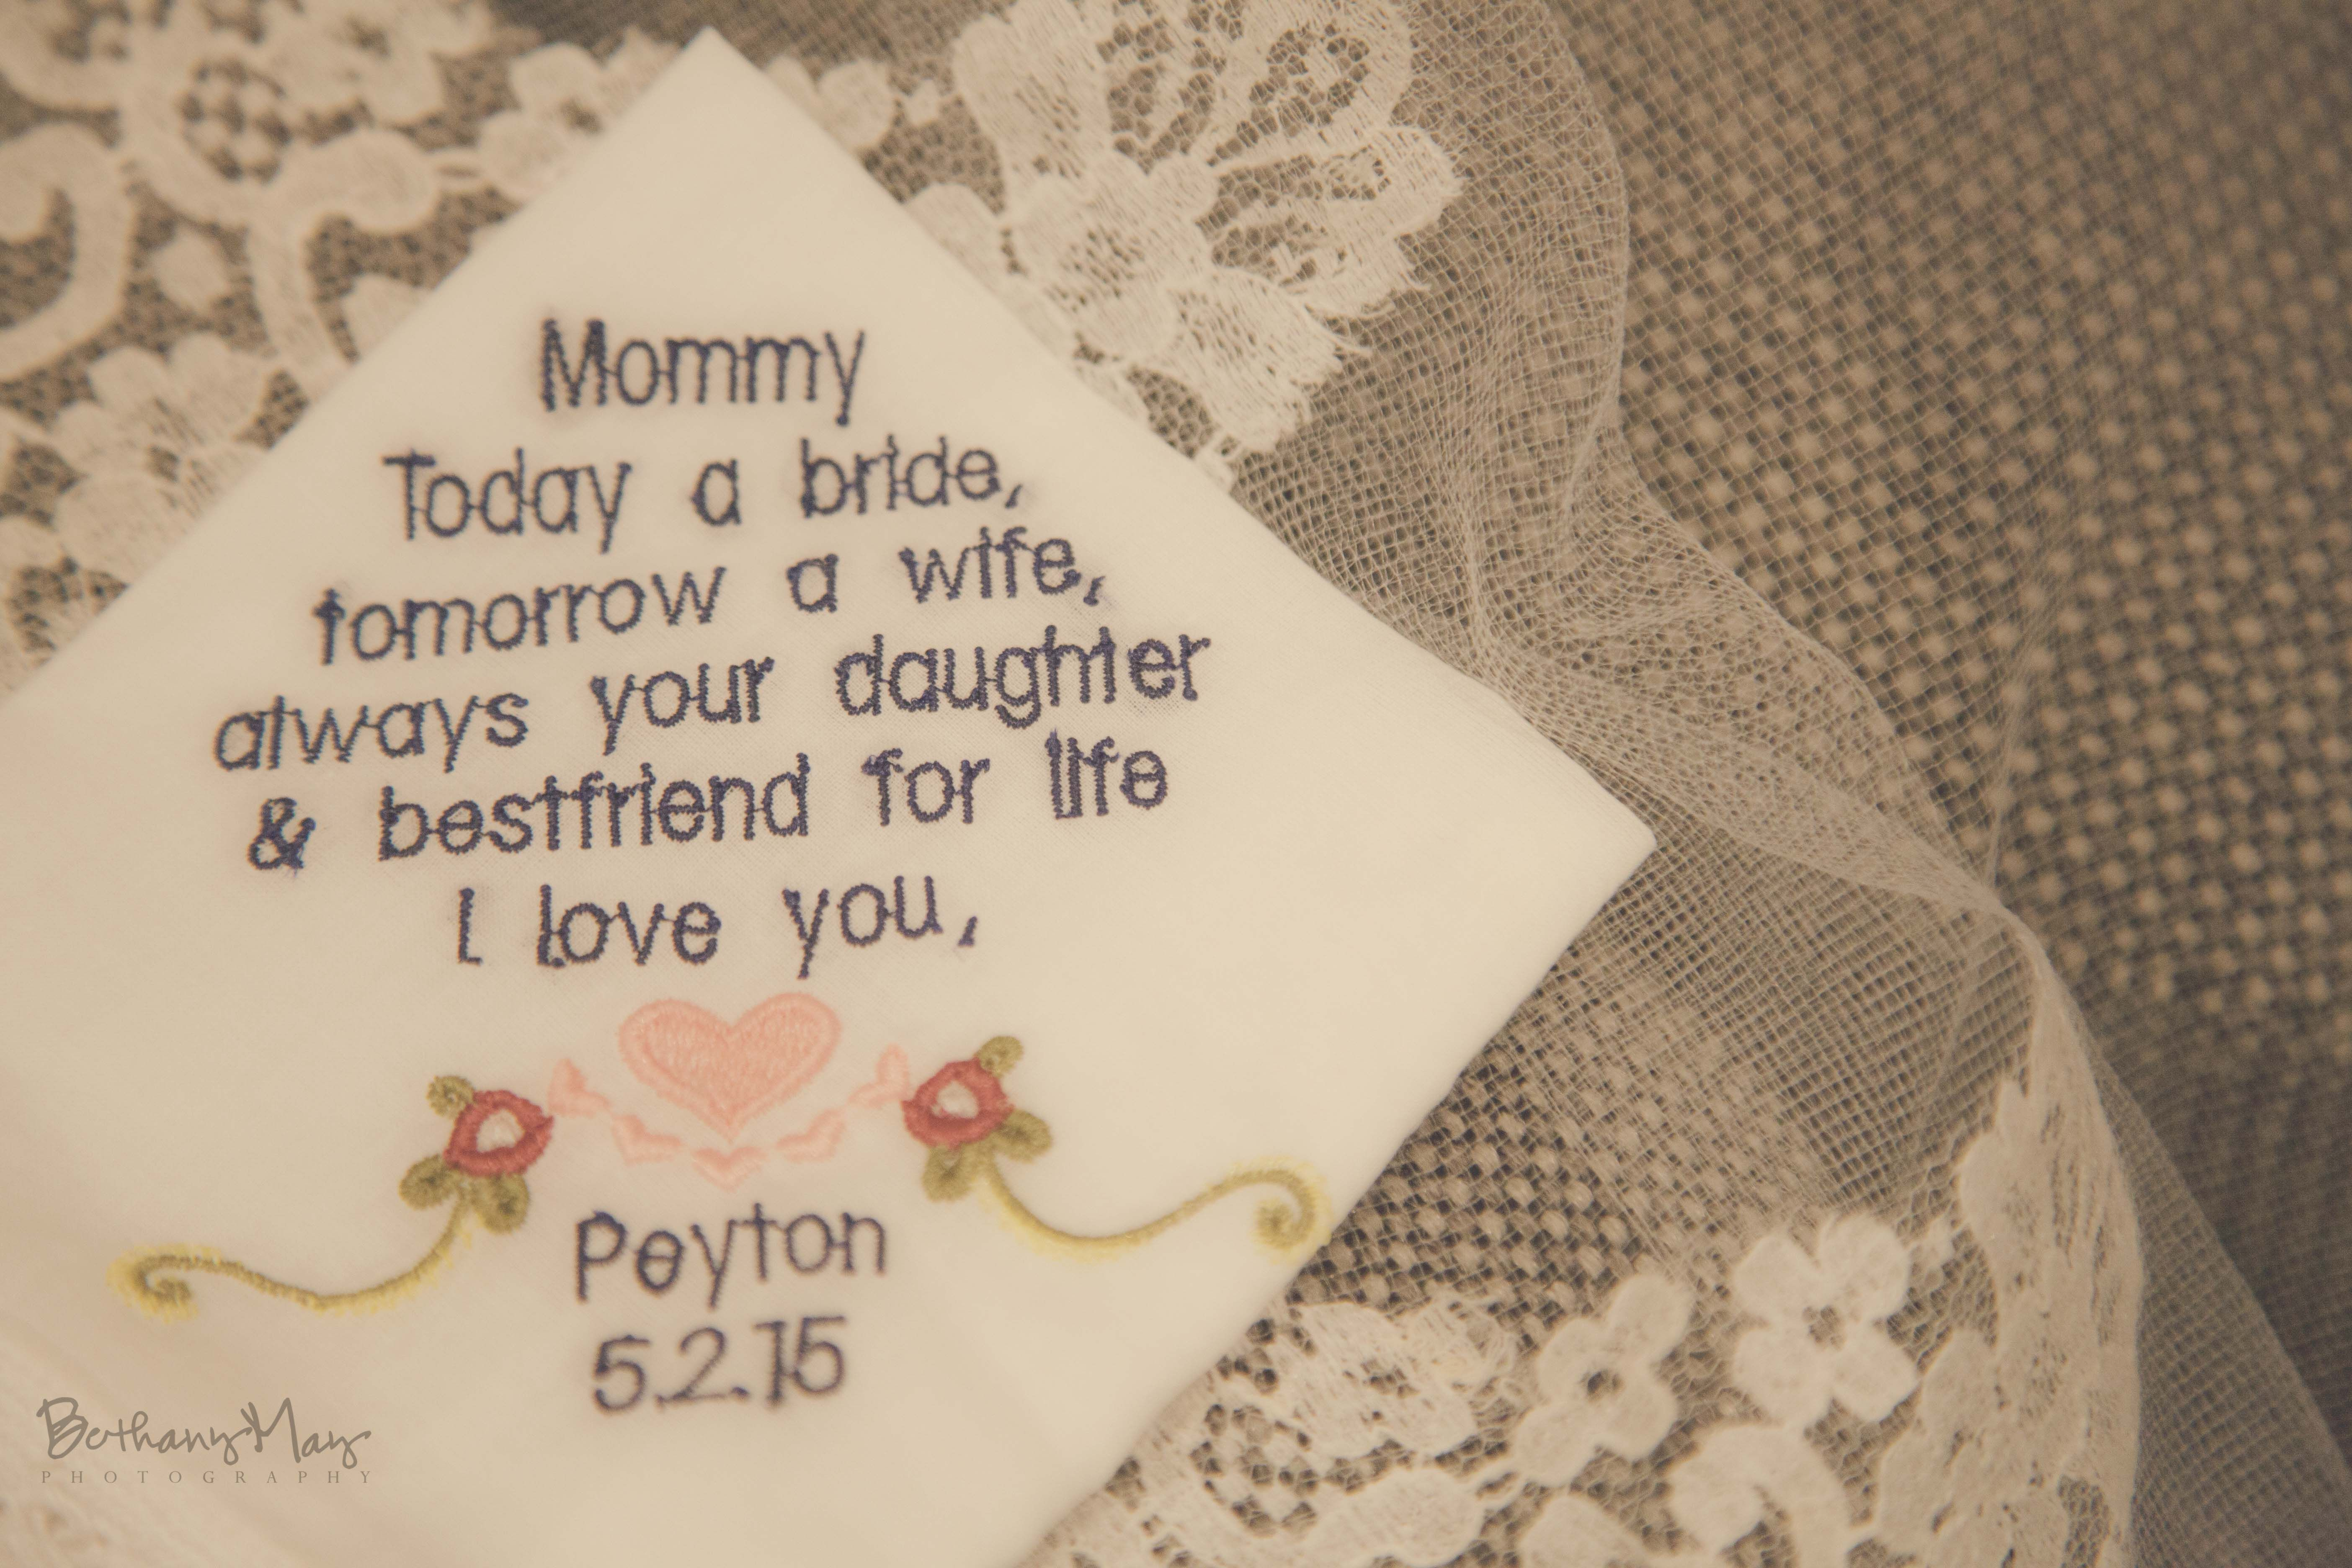 Beautiful gift idea for the mother of the bride.